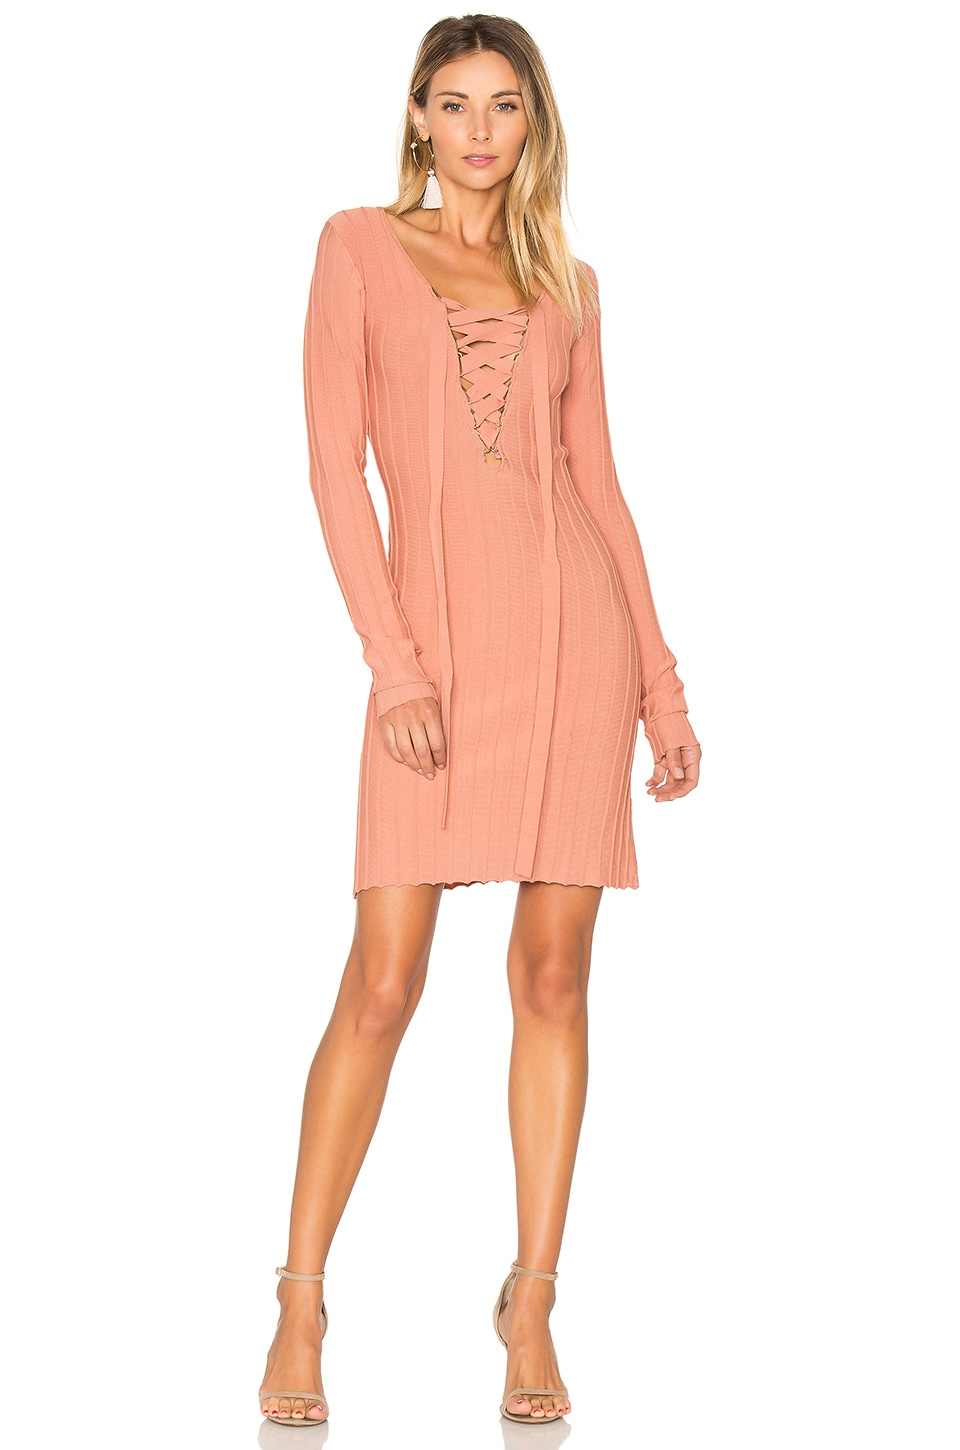 x KNITZ Simone Lace Front Sweater Dress by For Love & Lemons